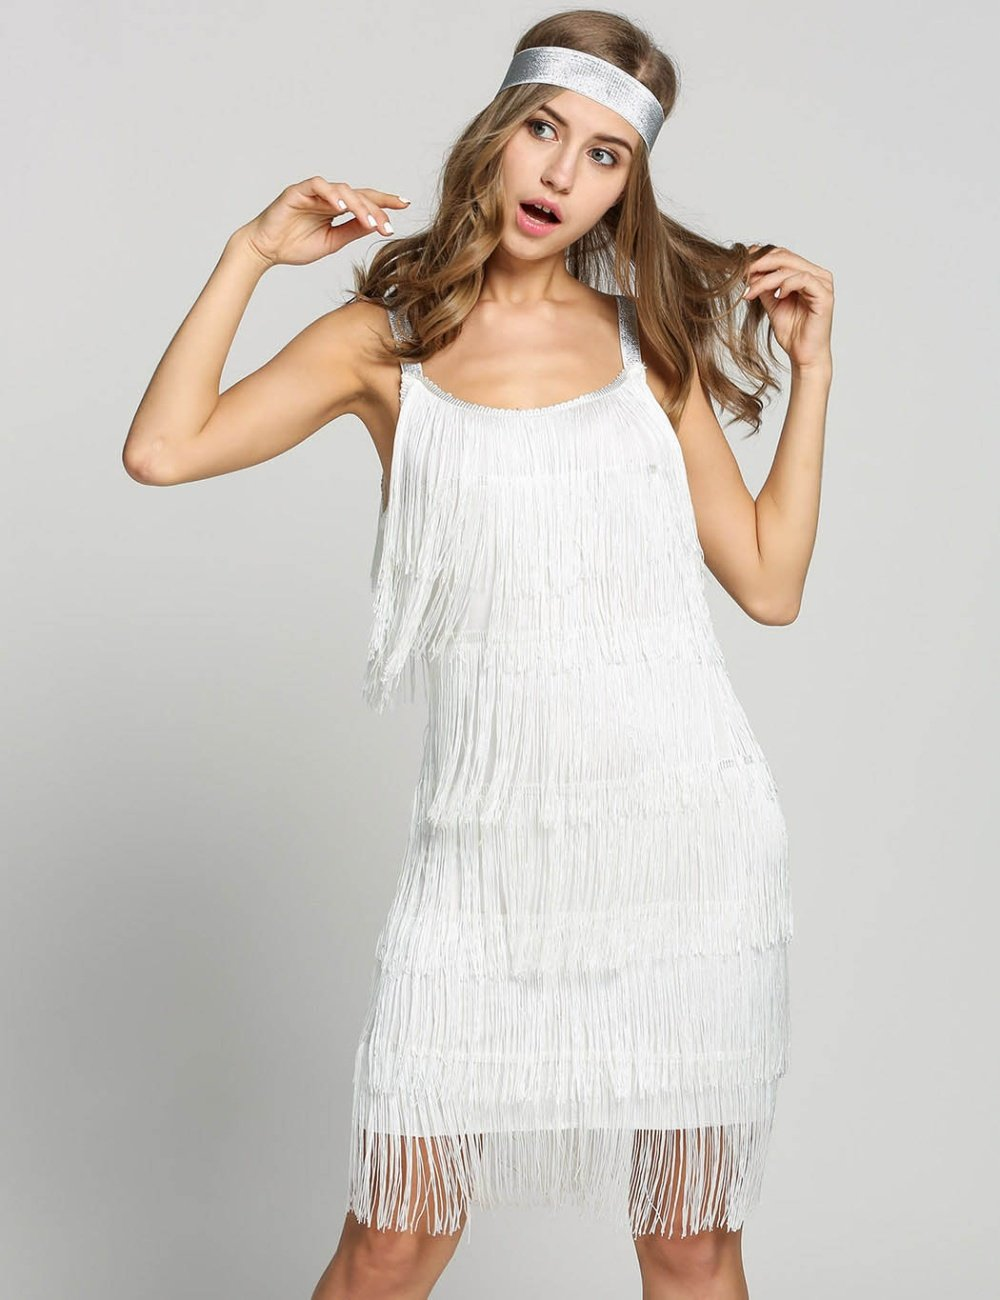 White fringe cocktail dress for women